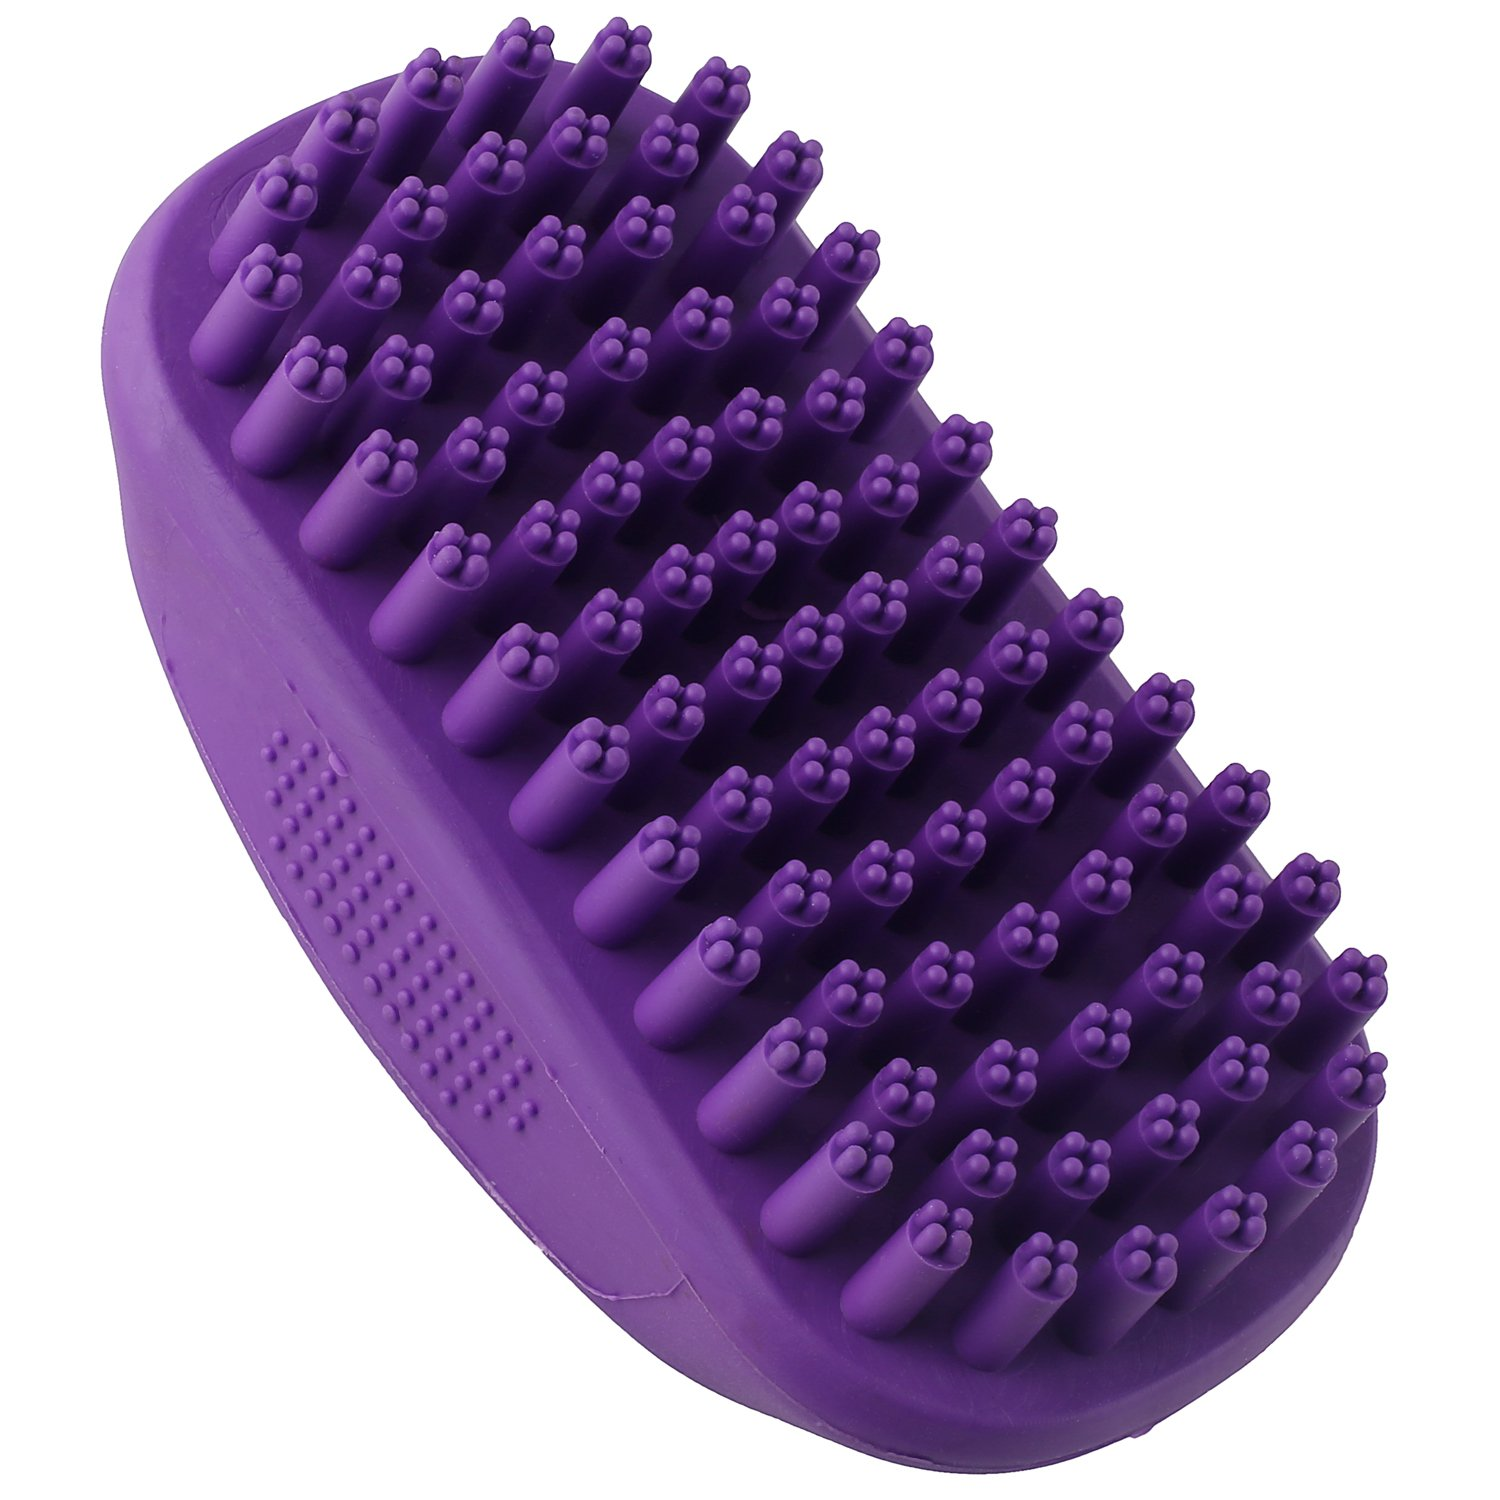 Hertzko Pet Bath & Massage Brush by Great Grooming Tool for Shampooing and Massaging Dogs and Cats with Short or Long Hair - Soft Rubber Bristles Gently Removes Loose & Shed Fur from your Pet's Coat